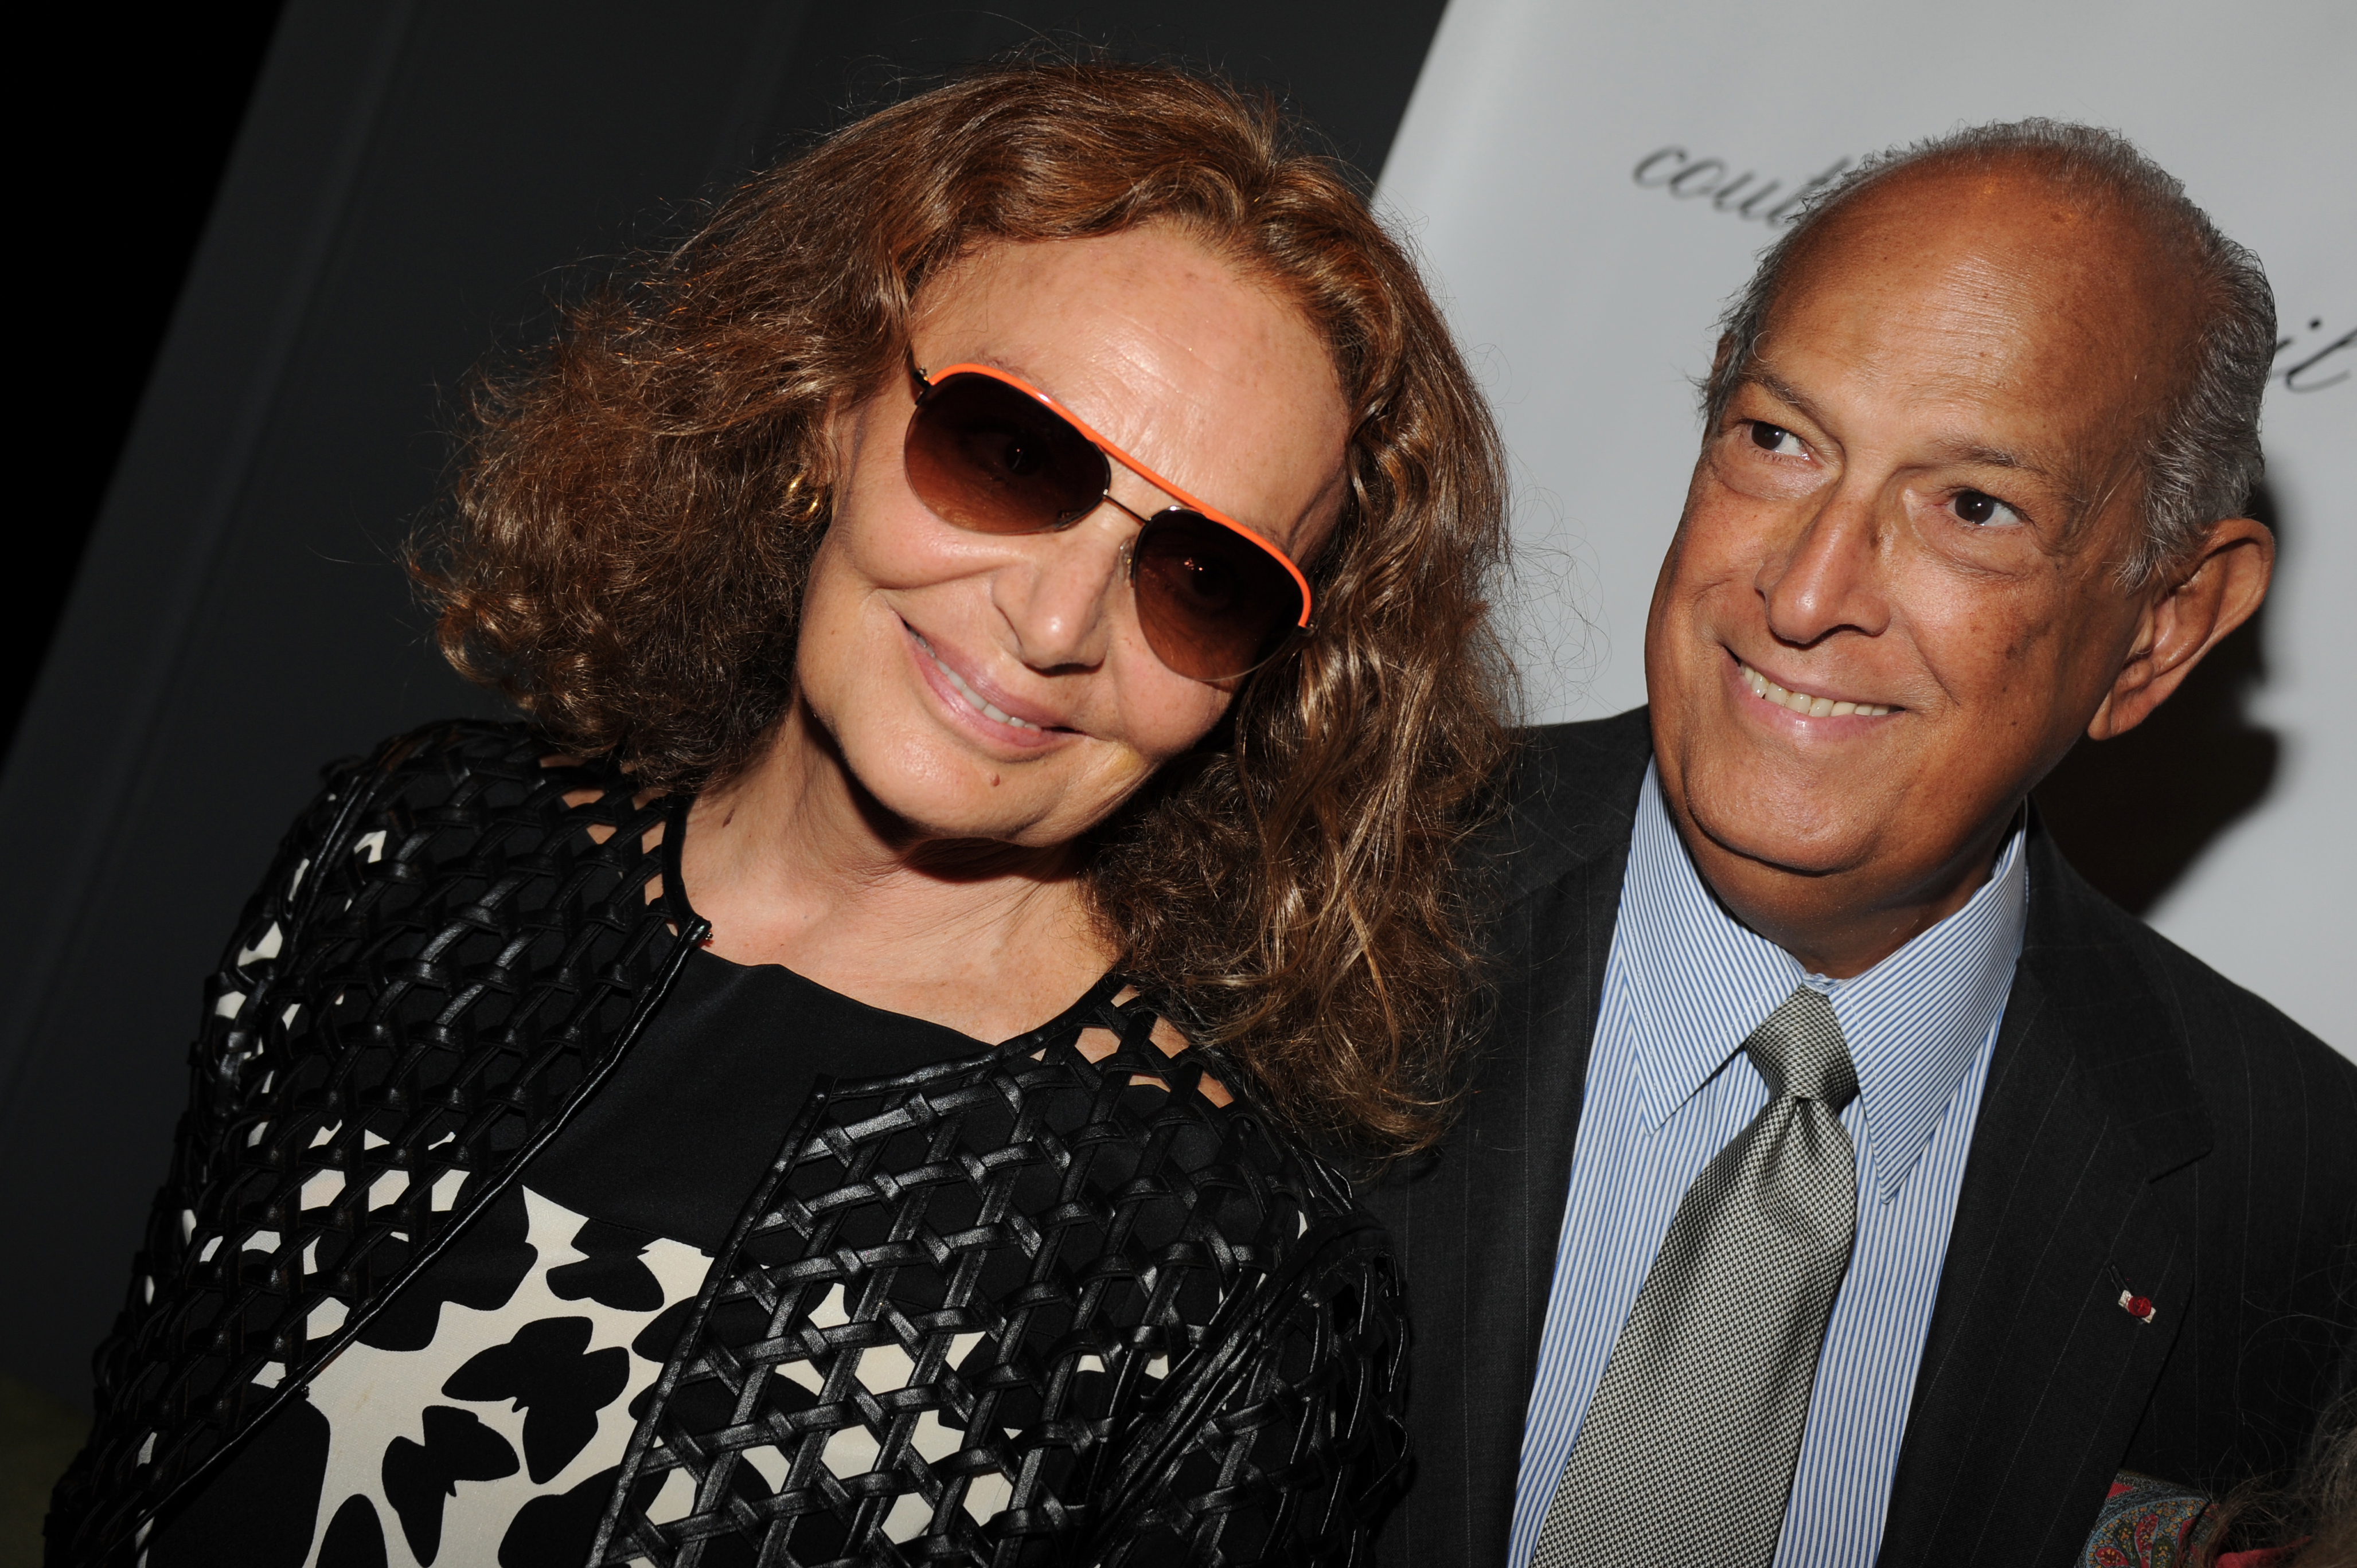 From Left: Diane von Furstenberg and Oscar de la Renta attend a function at Lincoln Center in new York City on Sept. 5, 2012.